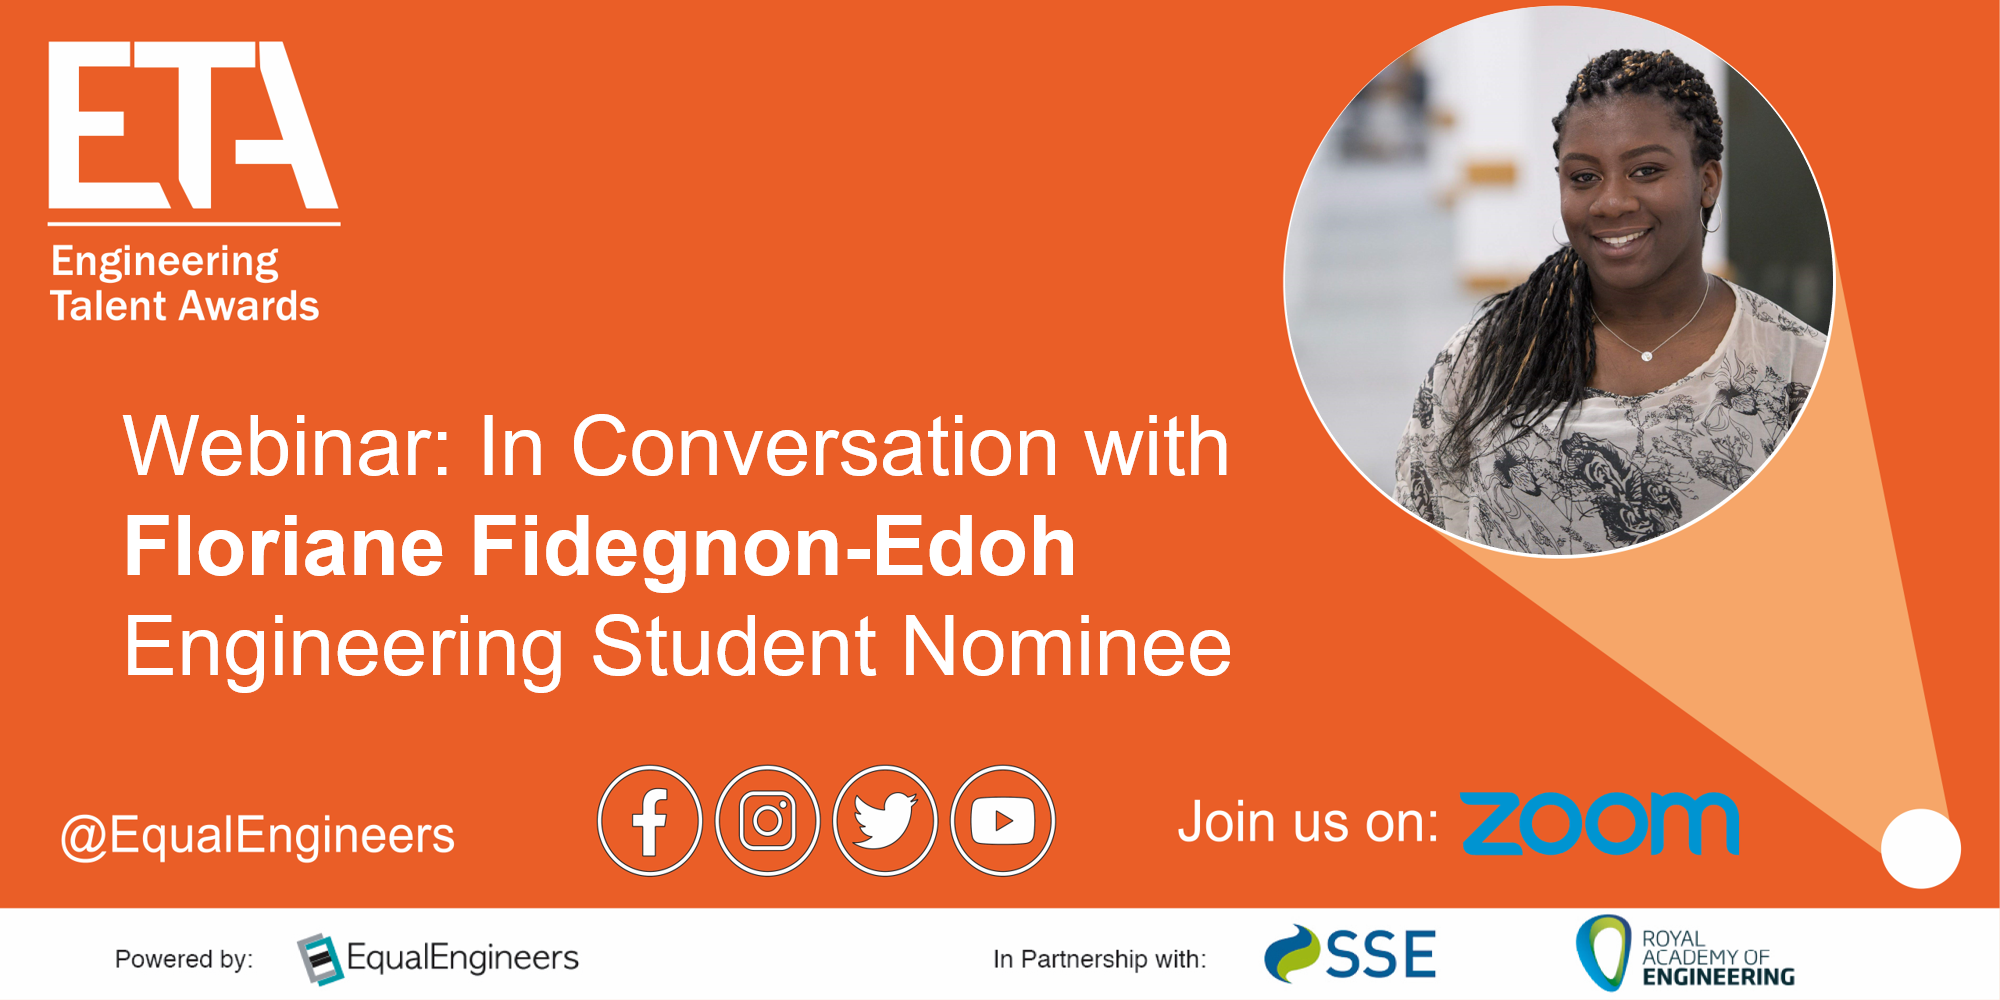 engineering-student-nominee-floriane-fidegnon-edoh